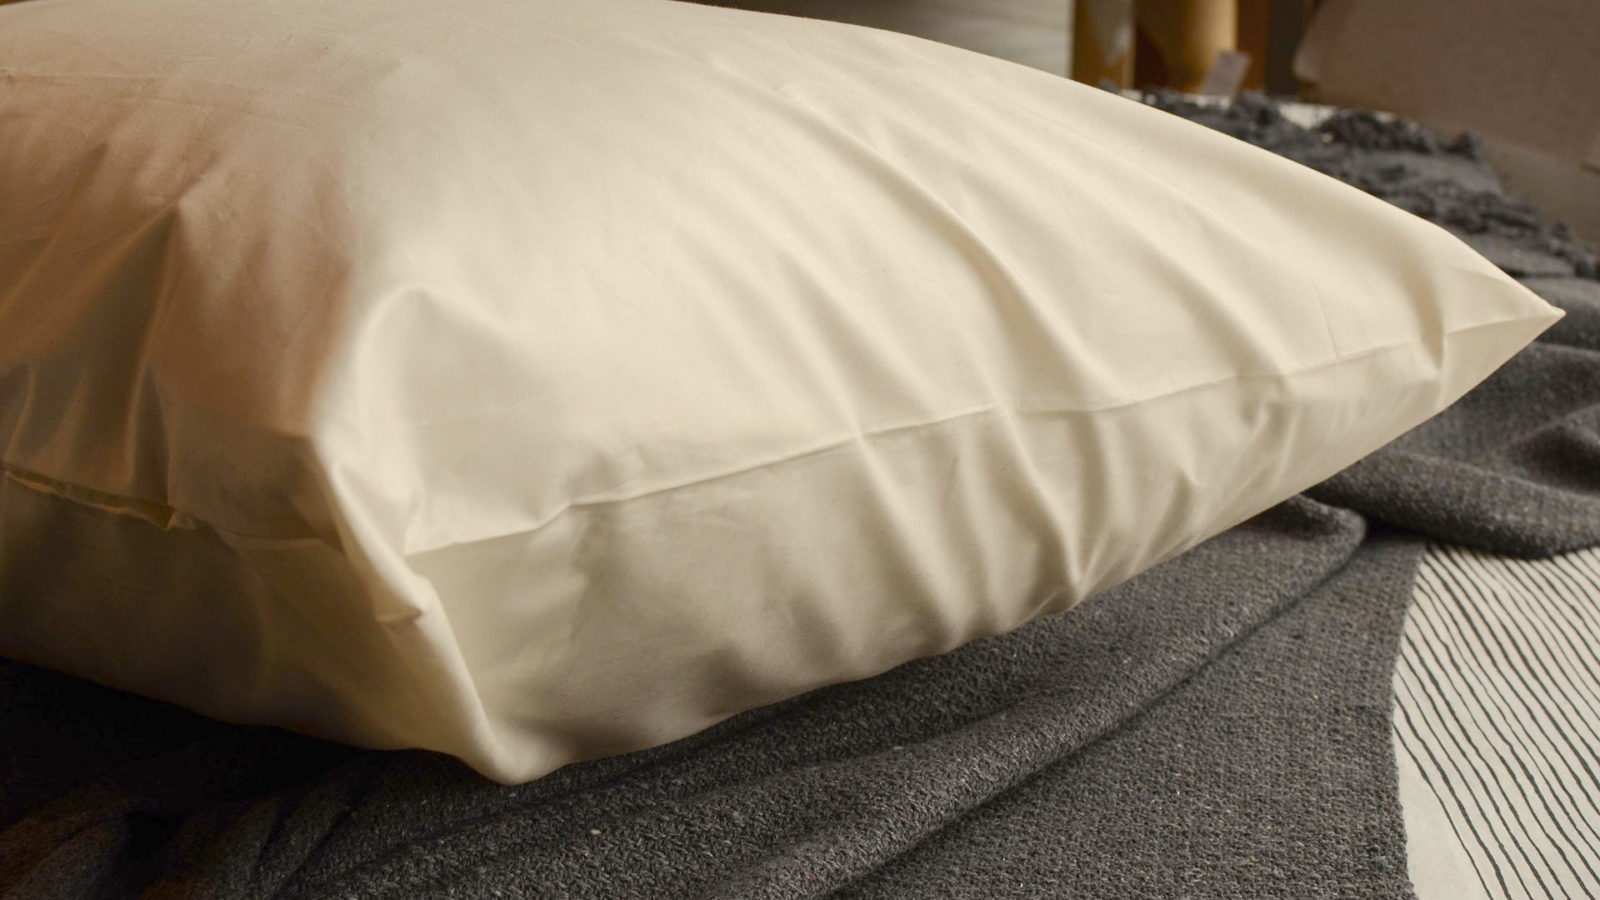 unbleached undyed organic cotton pillow protector with zip closure